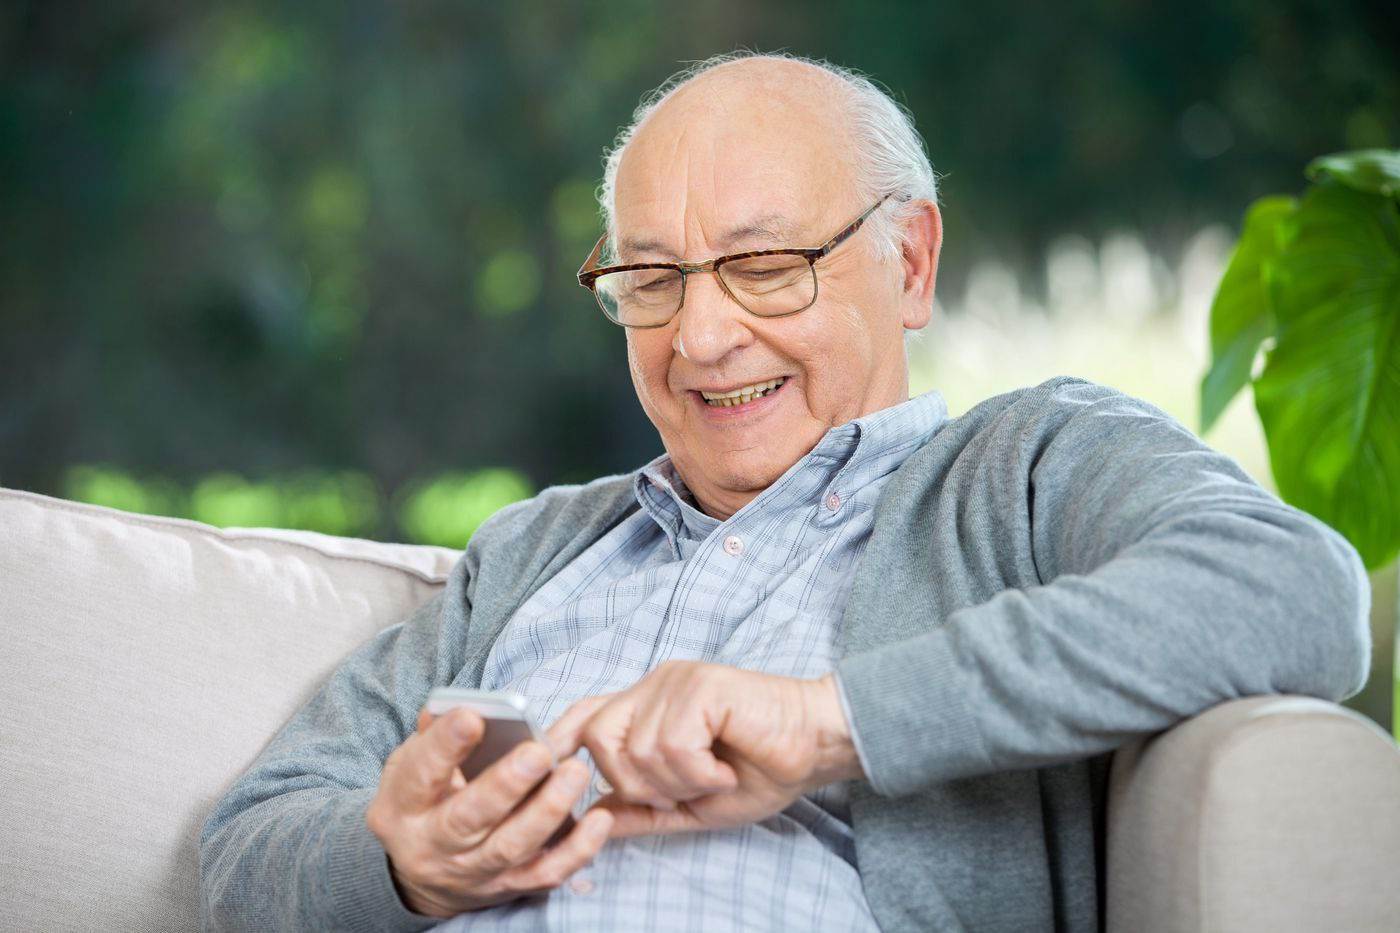 Essential Technology Older Adults | Man Using Smart Phone